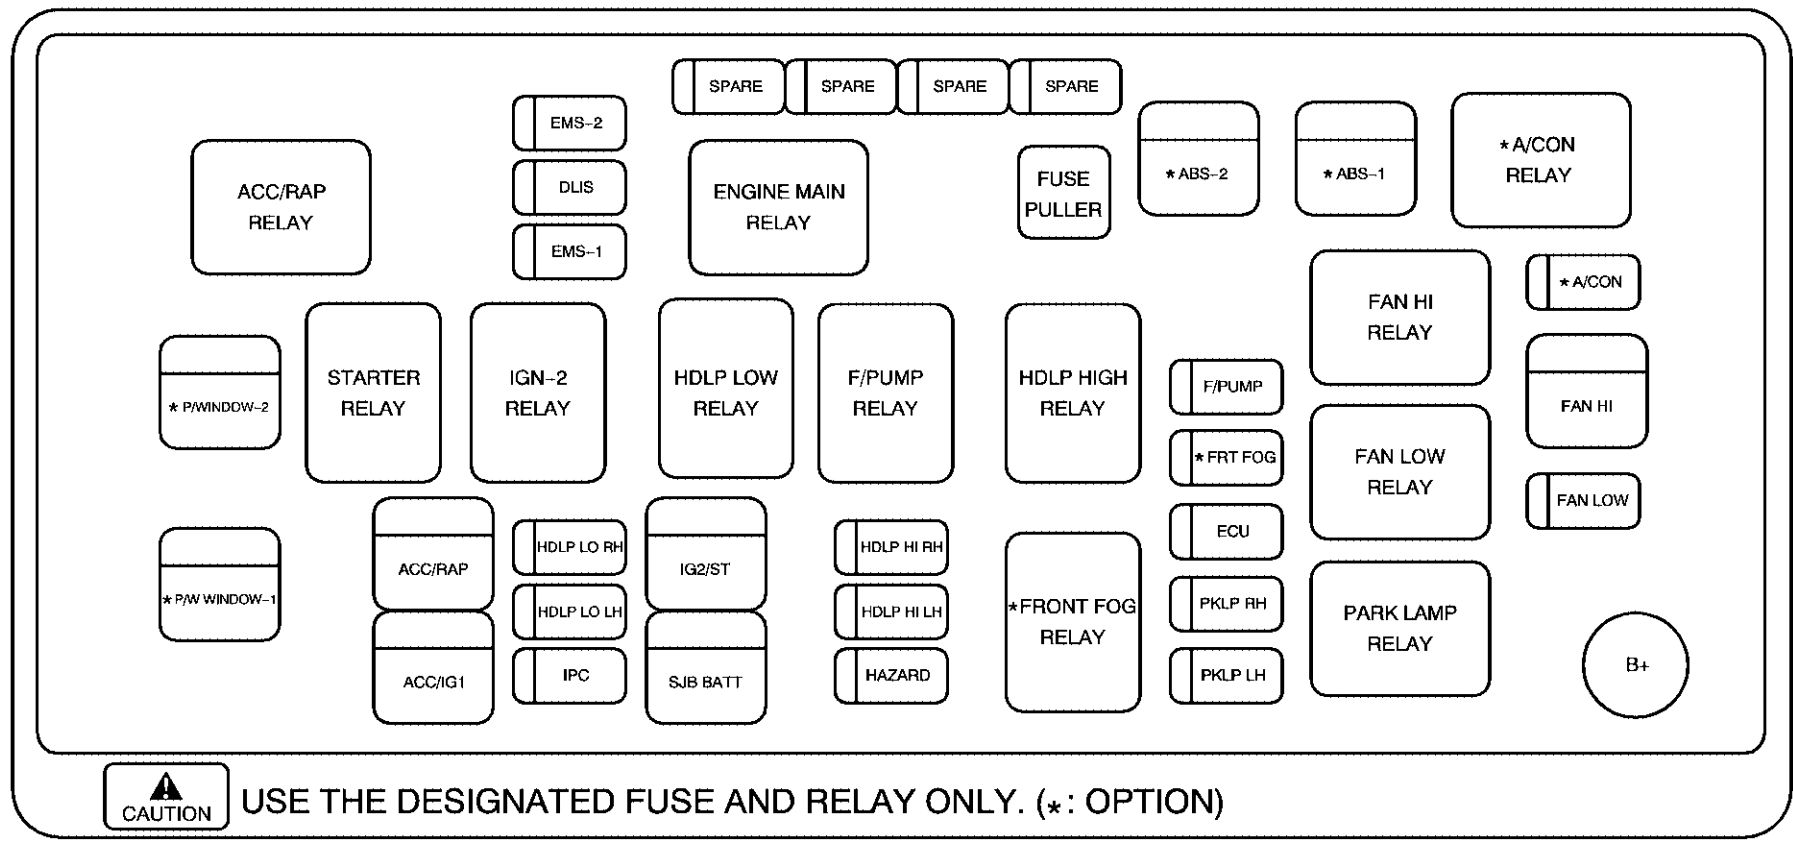 2009 Chevy Aveo Fuse Box Wiring Diagram Detailed 2007 Jeep Location 06 Simple Schema Impala